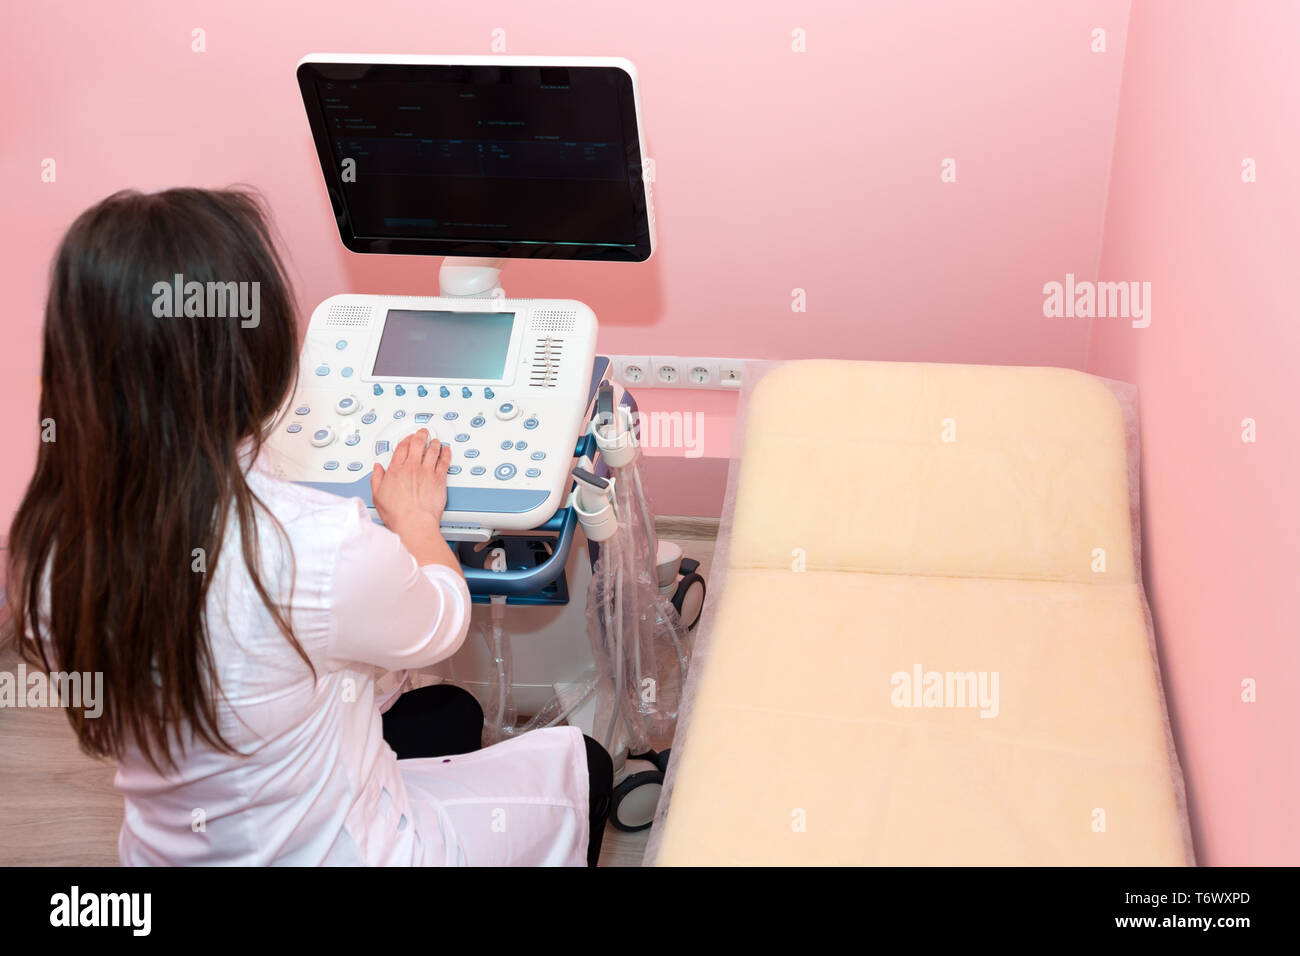 Doctor performing ultrasound scan in clinic. Expecting of child and diagnosing with ultrasound. - Stock Image